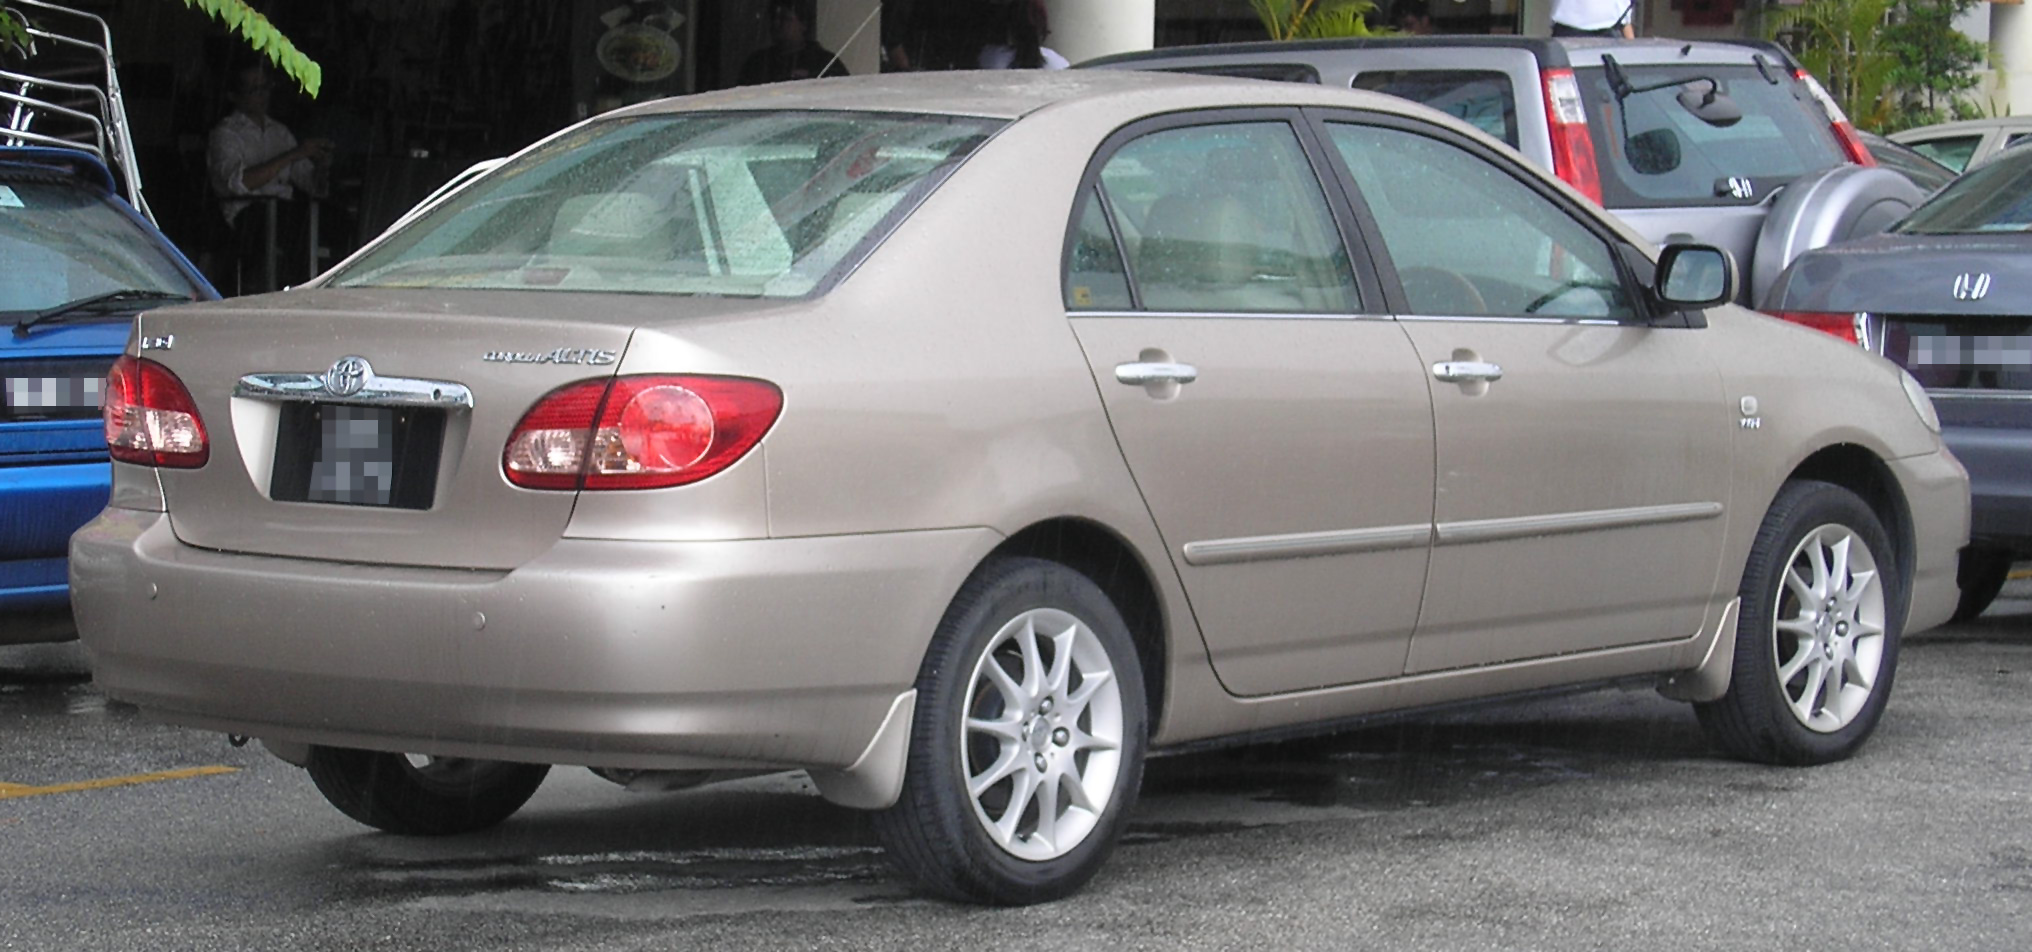 For sale 2007 toyota corolla altis contact mrathar mobile condition